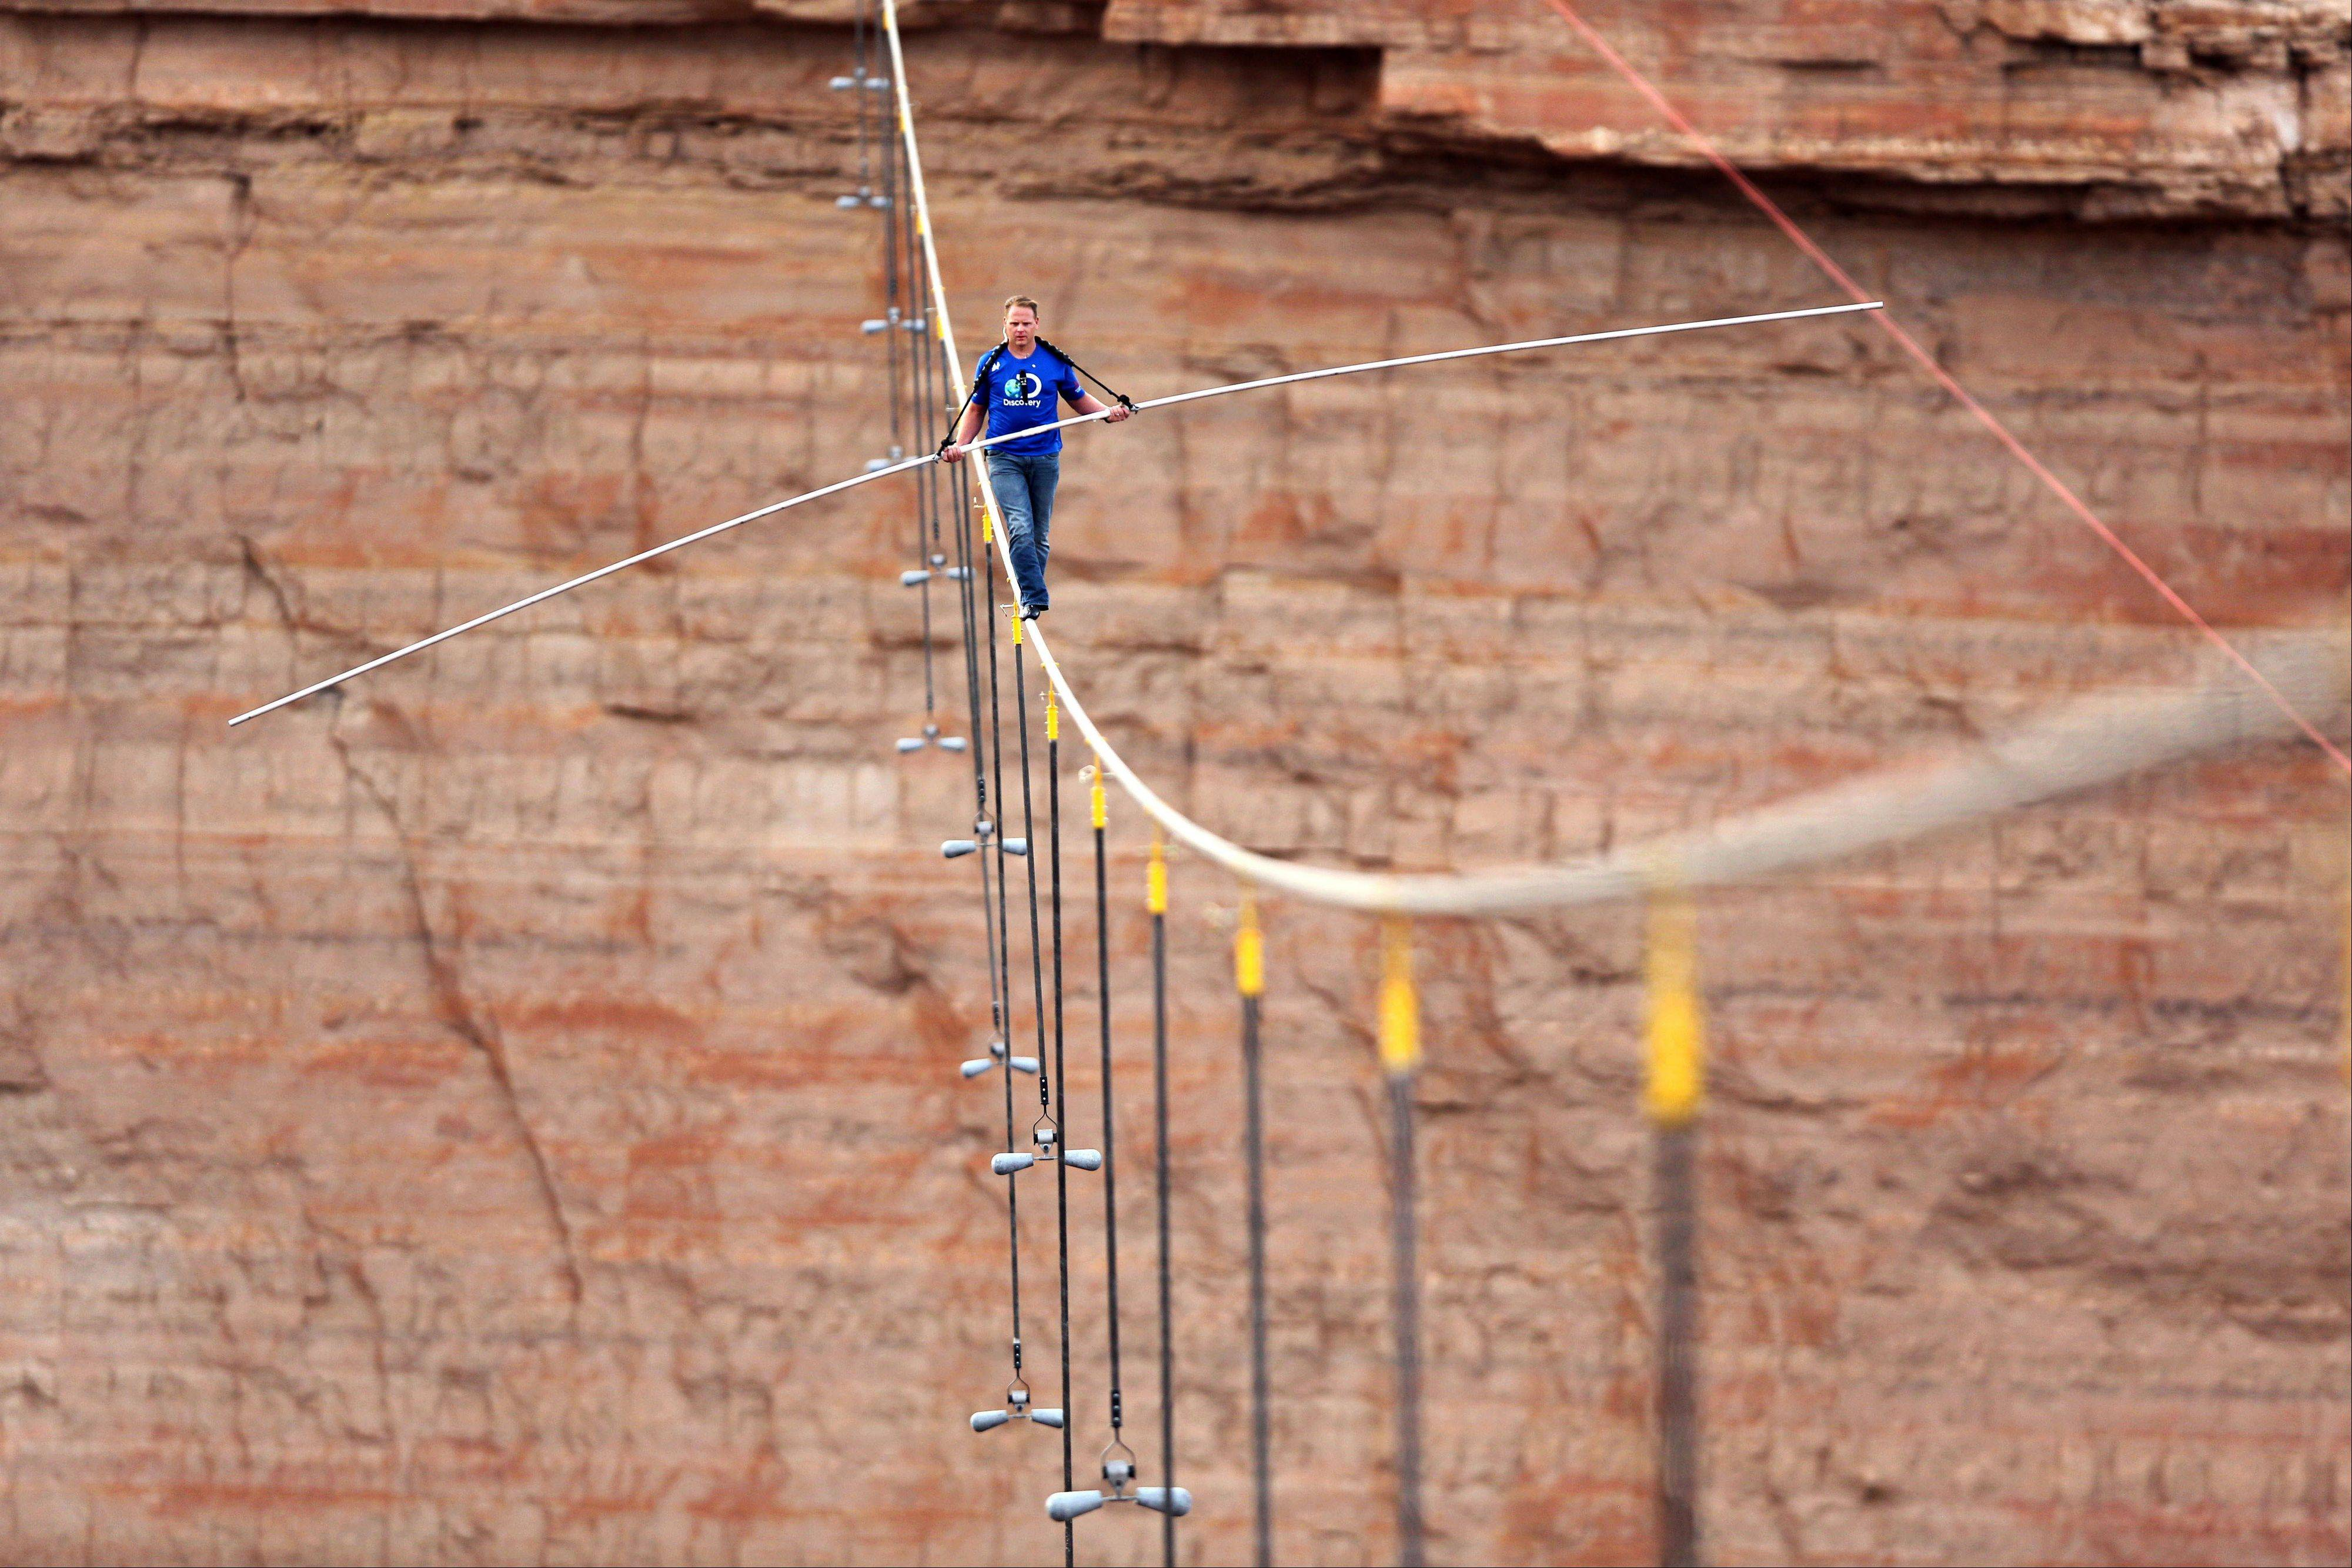 Aerialist Nik Wallenda walked a 2-inch-thick steel cable a quarter mile over the Little Colorado River Gorge, Ariz., in June. TV execs are on the lookout for the next big live event.